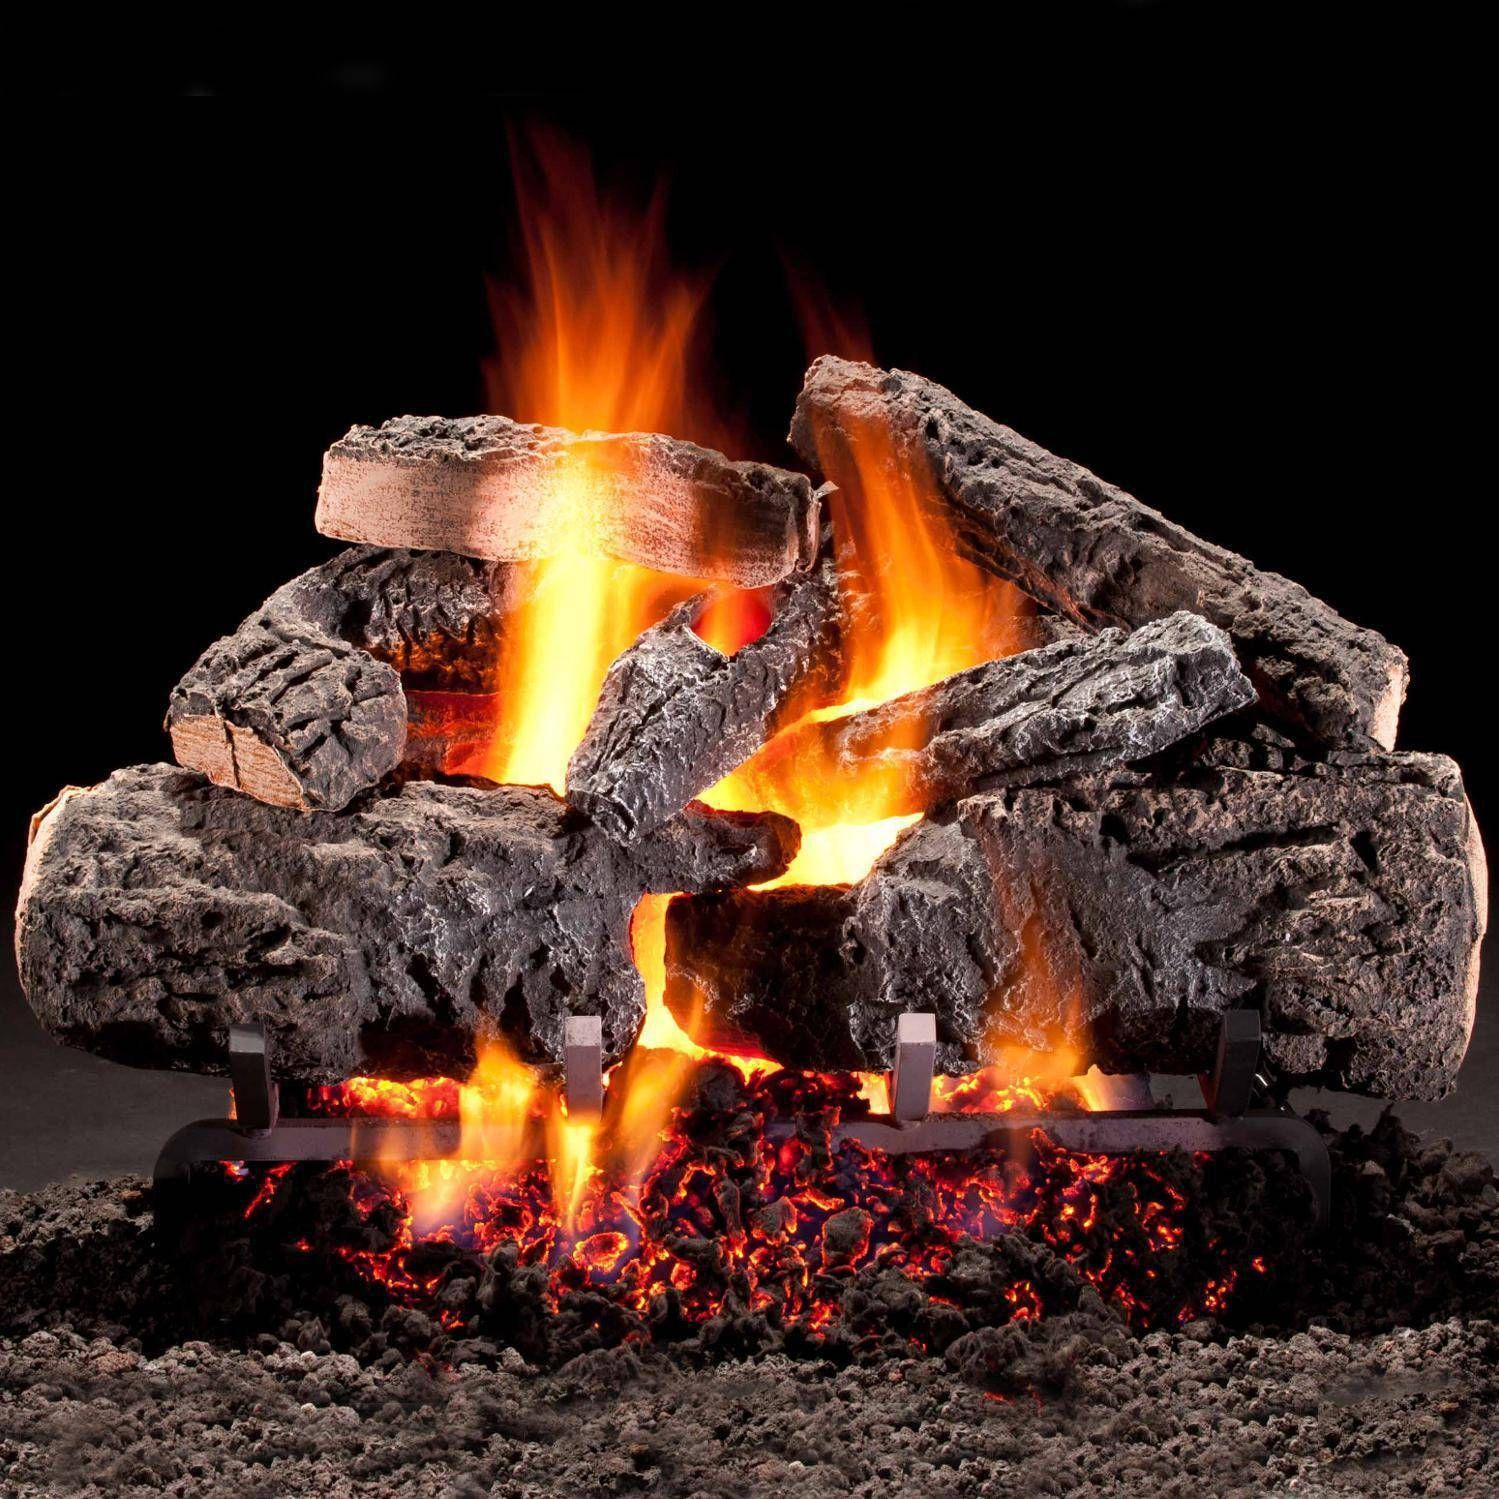 Hargrove 21 Inch Cross Timbers Vented Propane Log Set With E Burner Manual Safety Pilot W Wireless On Off Wall Switch Kit With Images Gas Fireplace Logs Gas Logs Vented Gas Fireplace